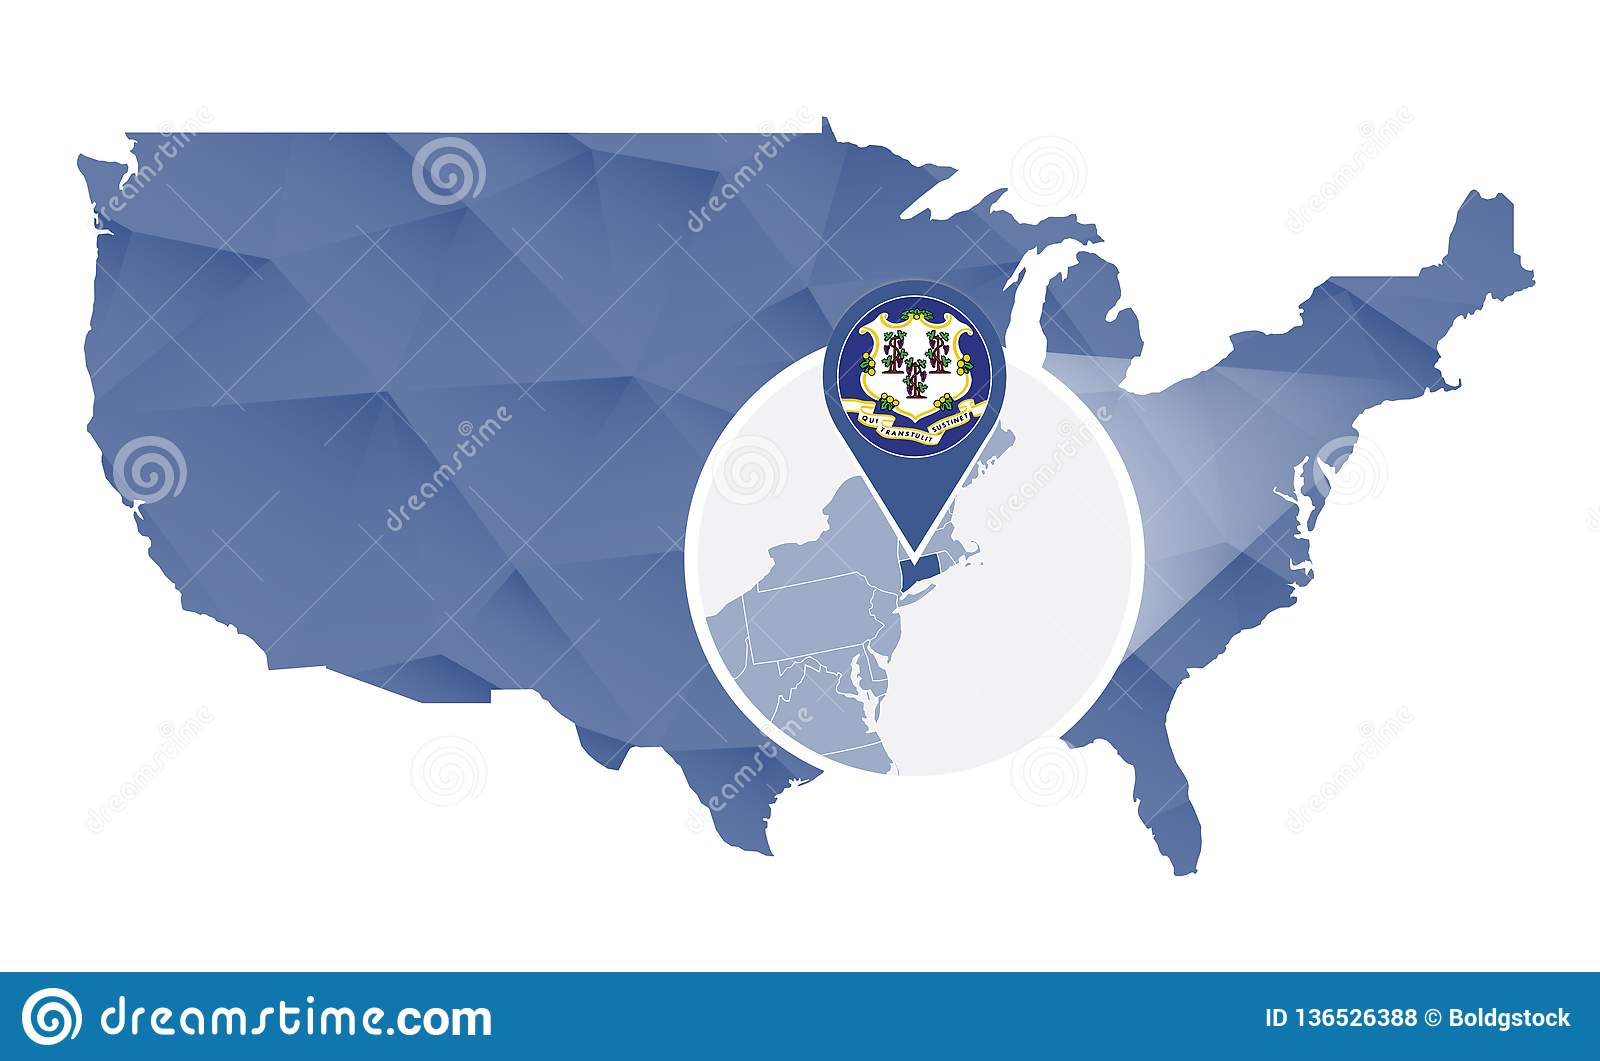 Connecticut State Magnified On United States Map Stock Vector - Connecticut-on-the-us-map